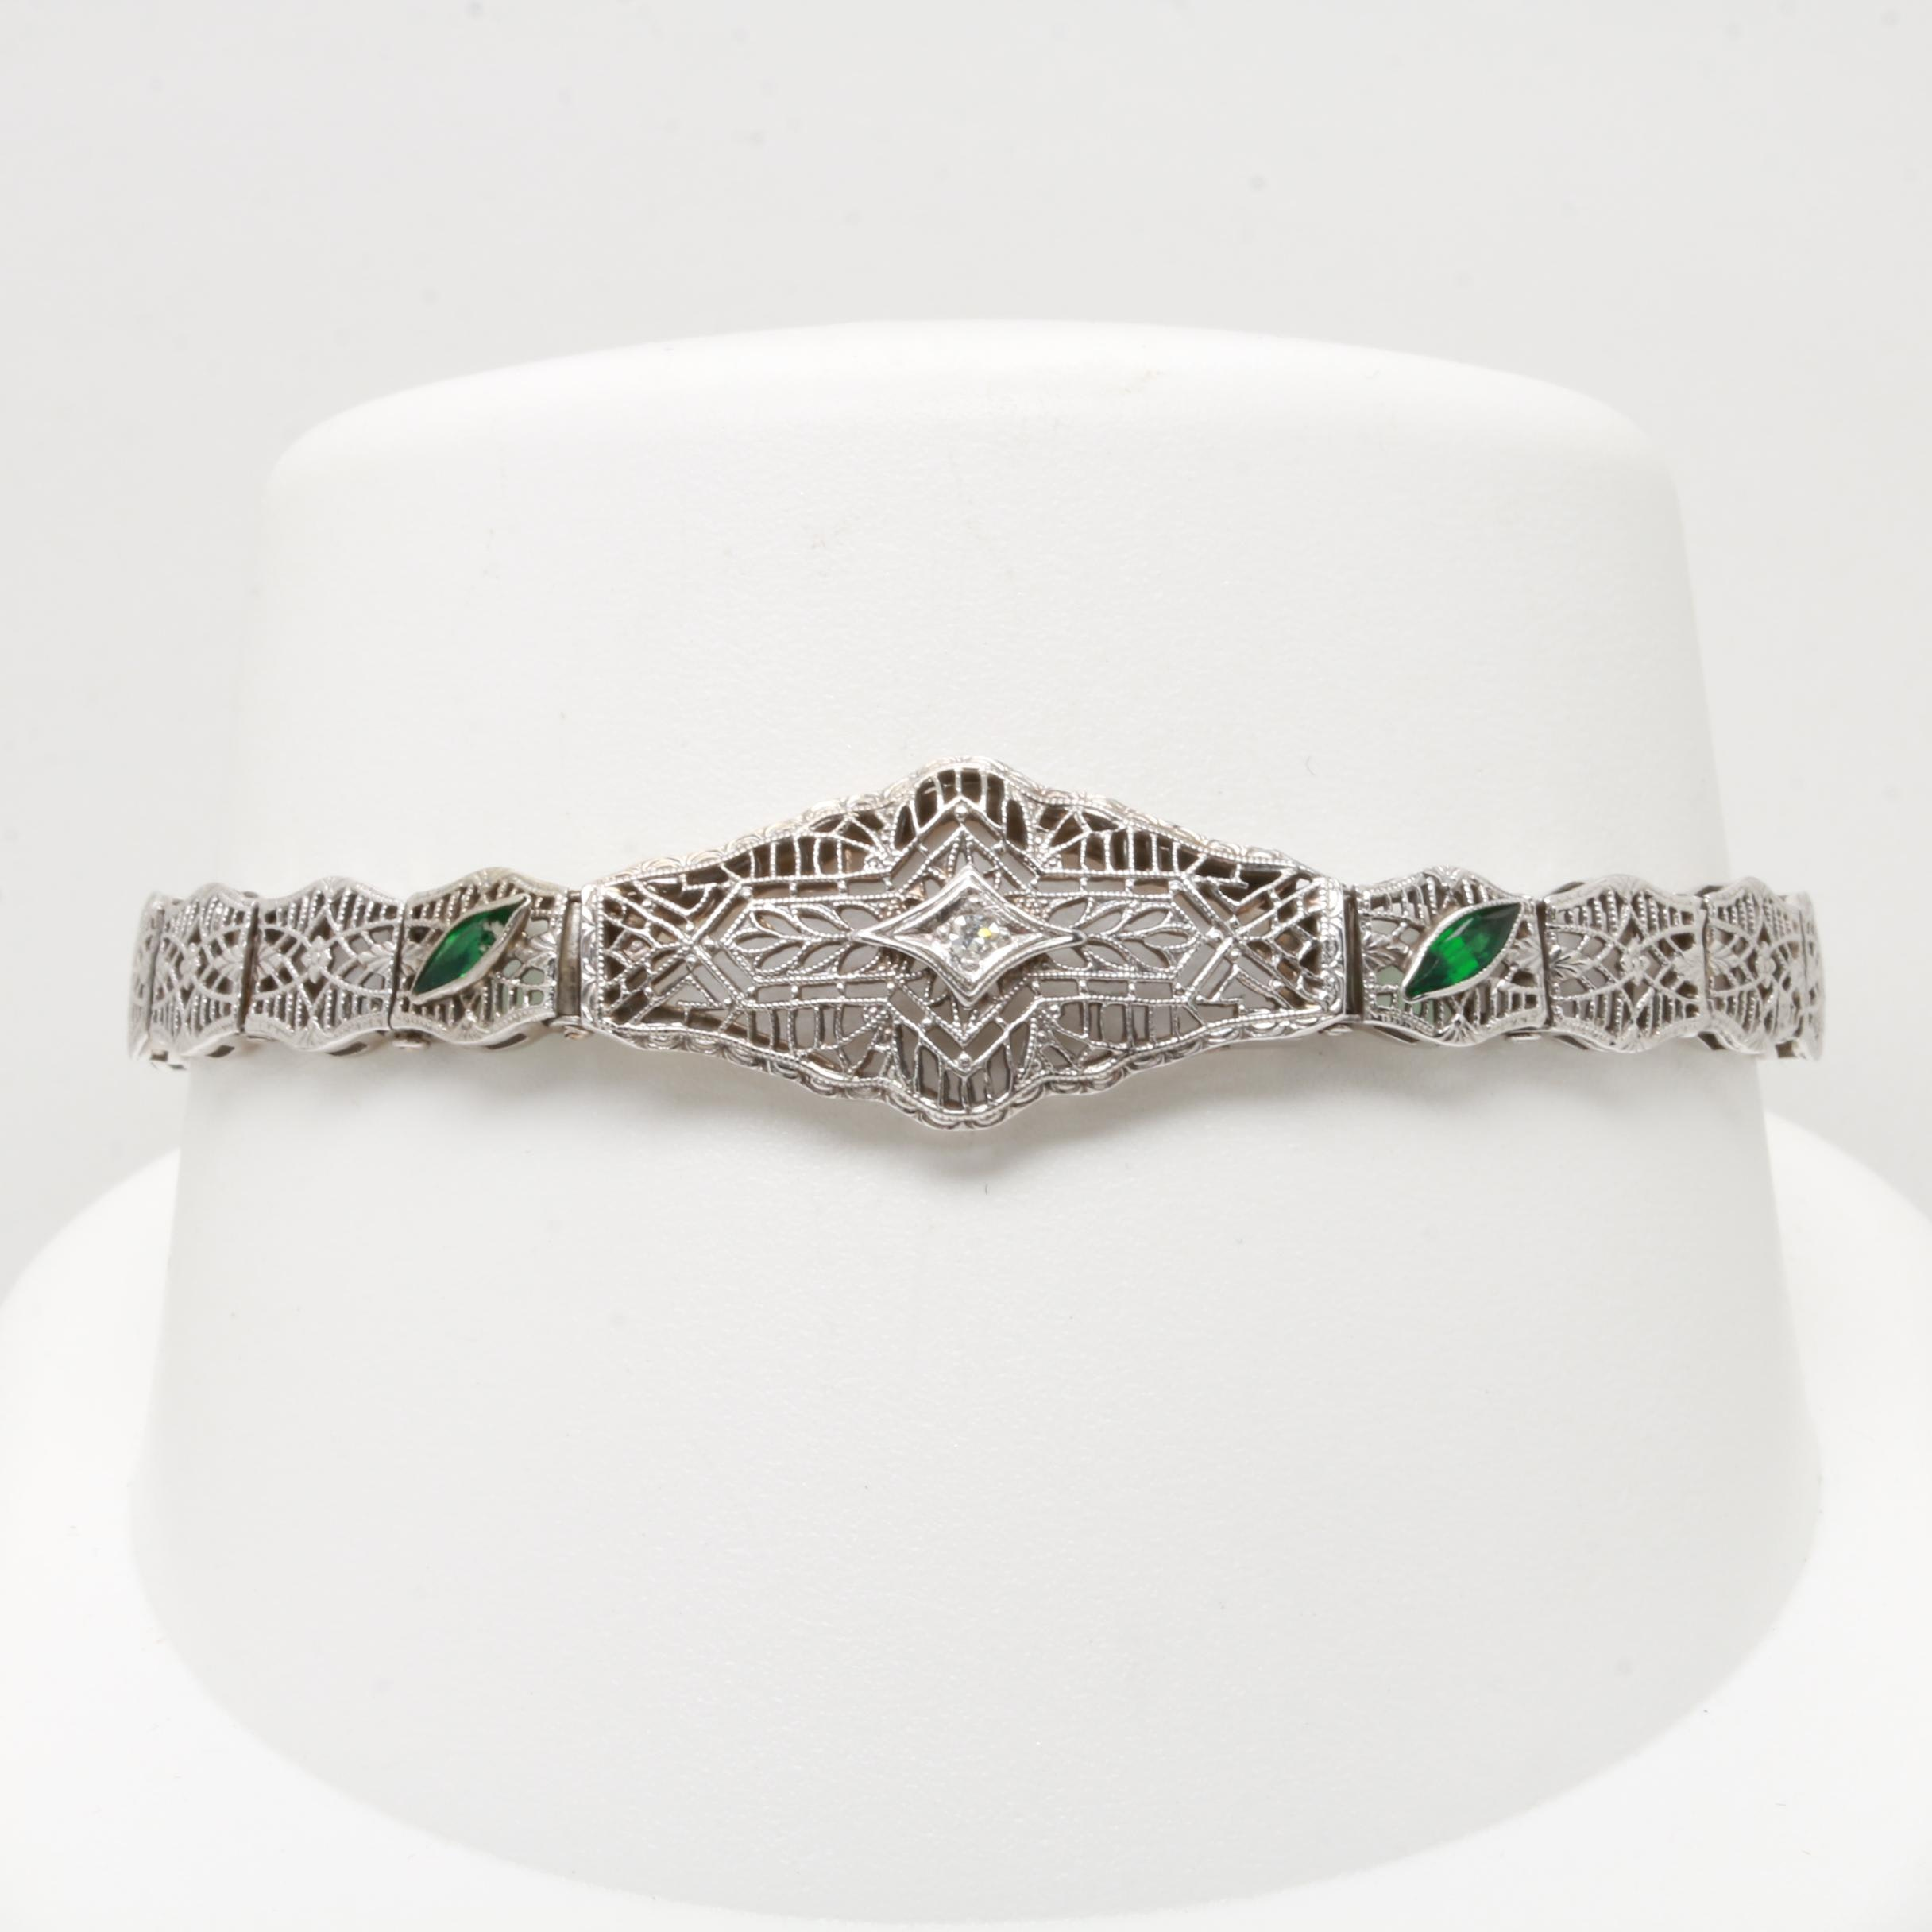 Circa 1930s 14K White Gold Diamond and Glass Filigree Bracelet